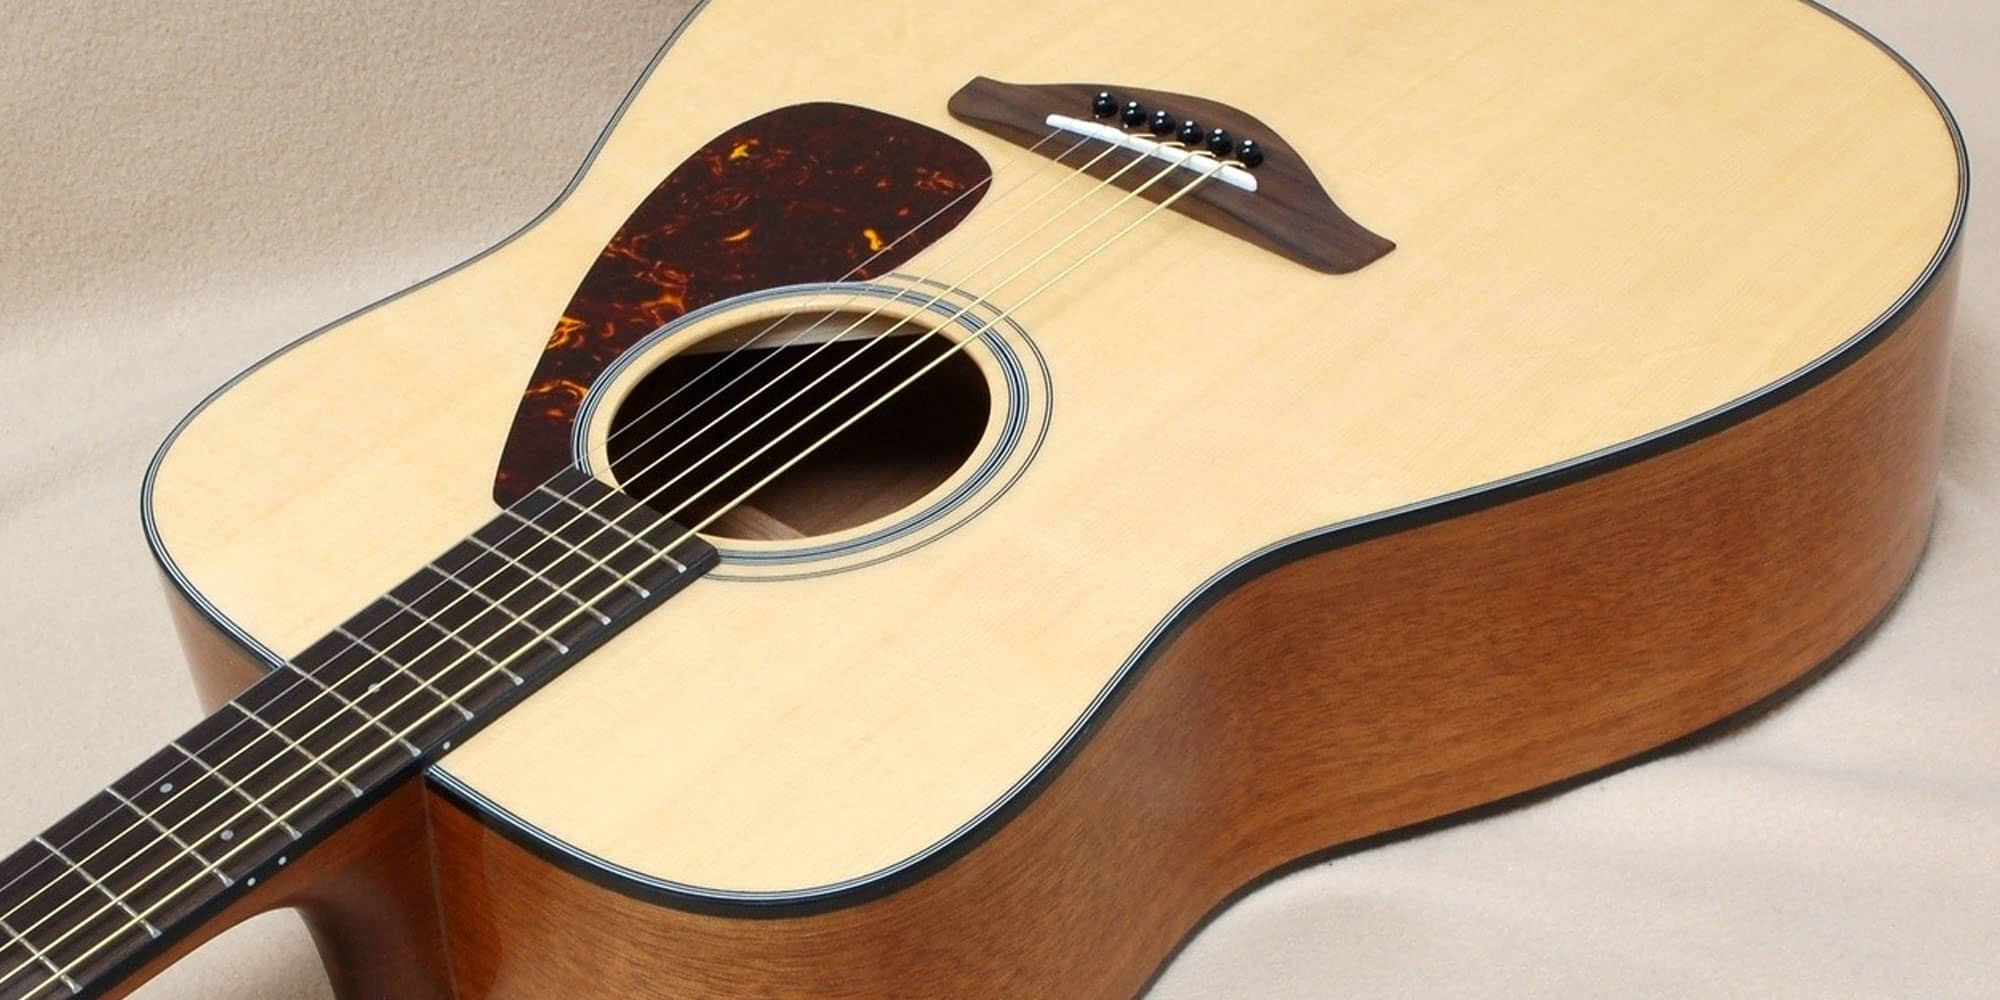 Your First Acoustic Guitar Can Be A Big Purchase With Prices Ranging From Under 100 To Up In The Thousands World Of Acoustics And What Dictates Their